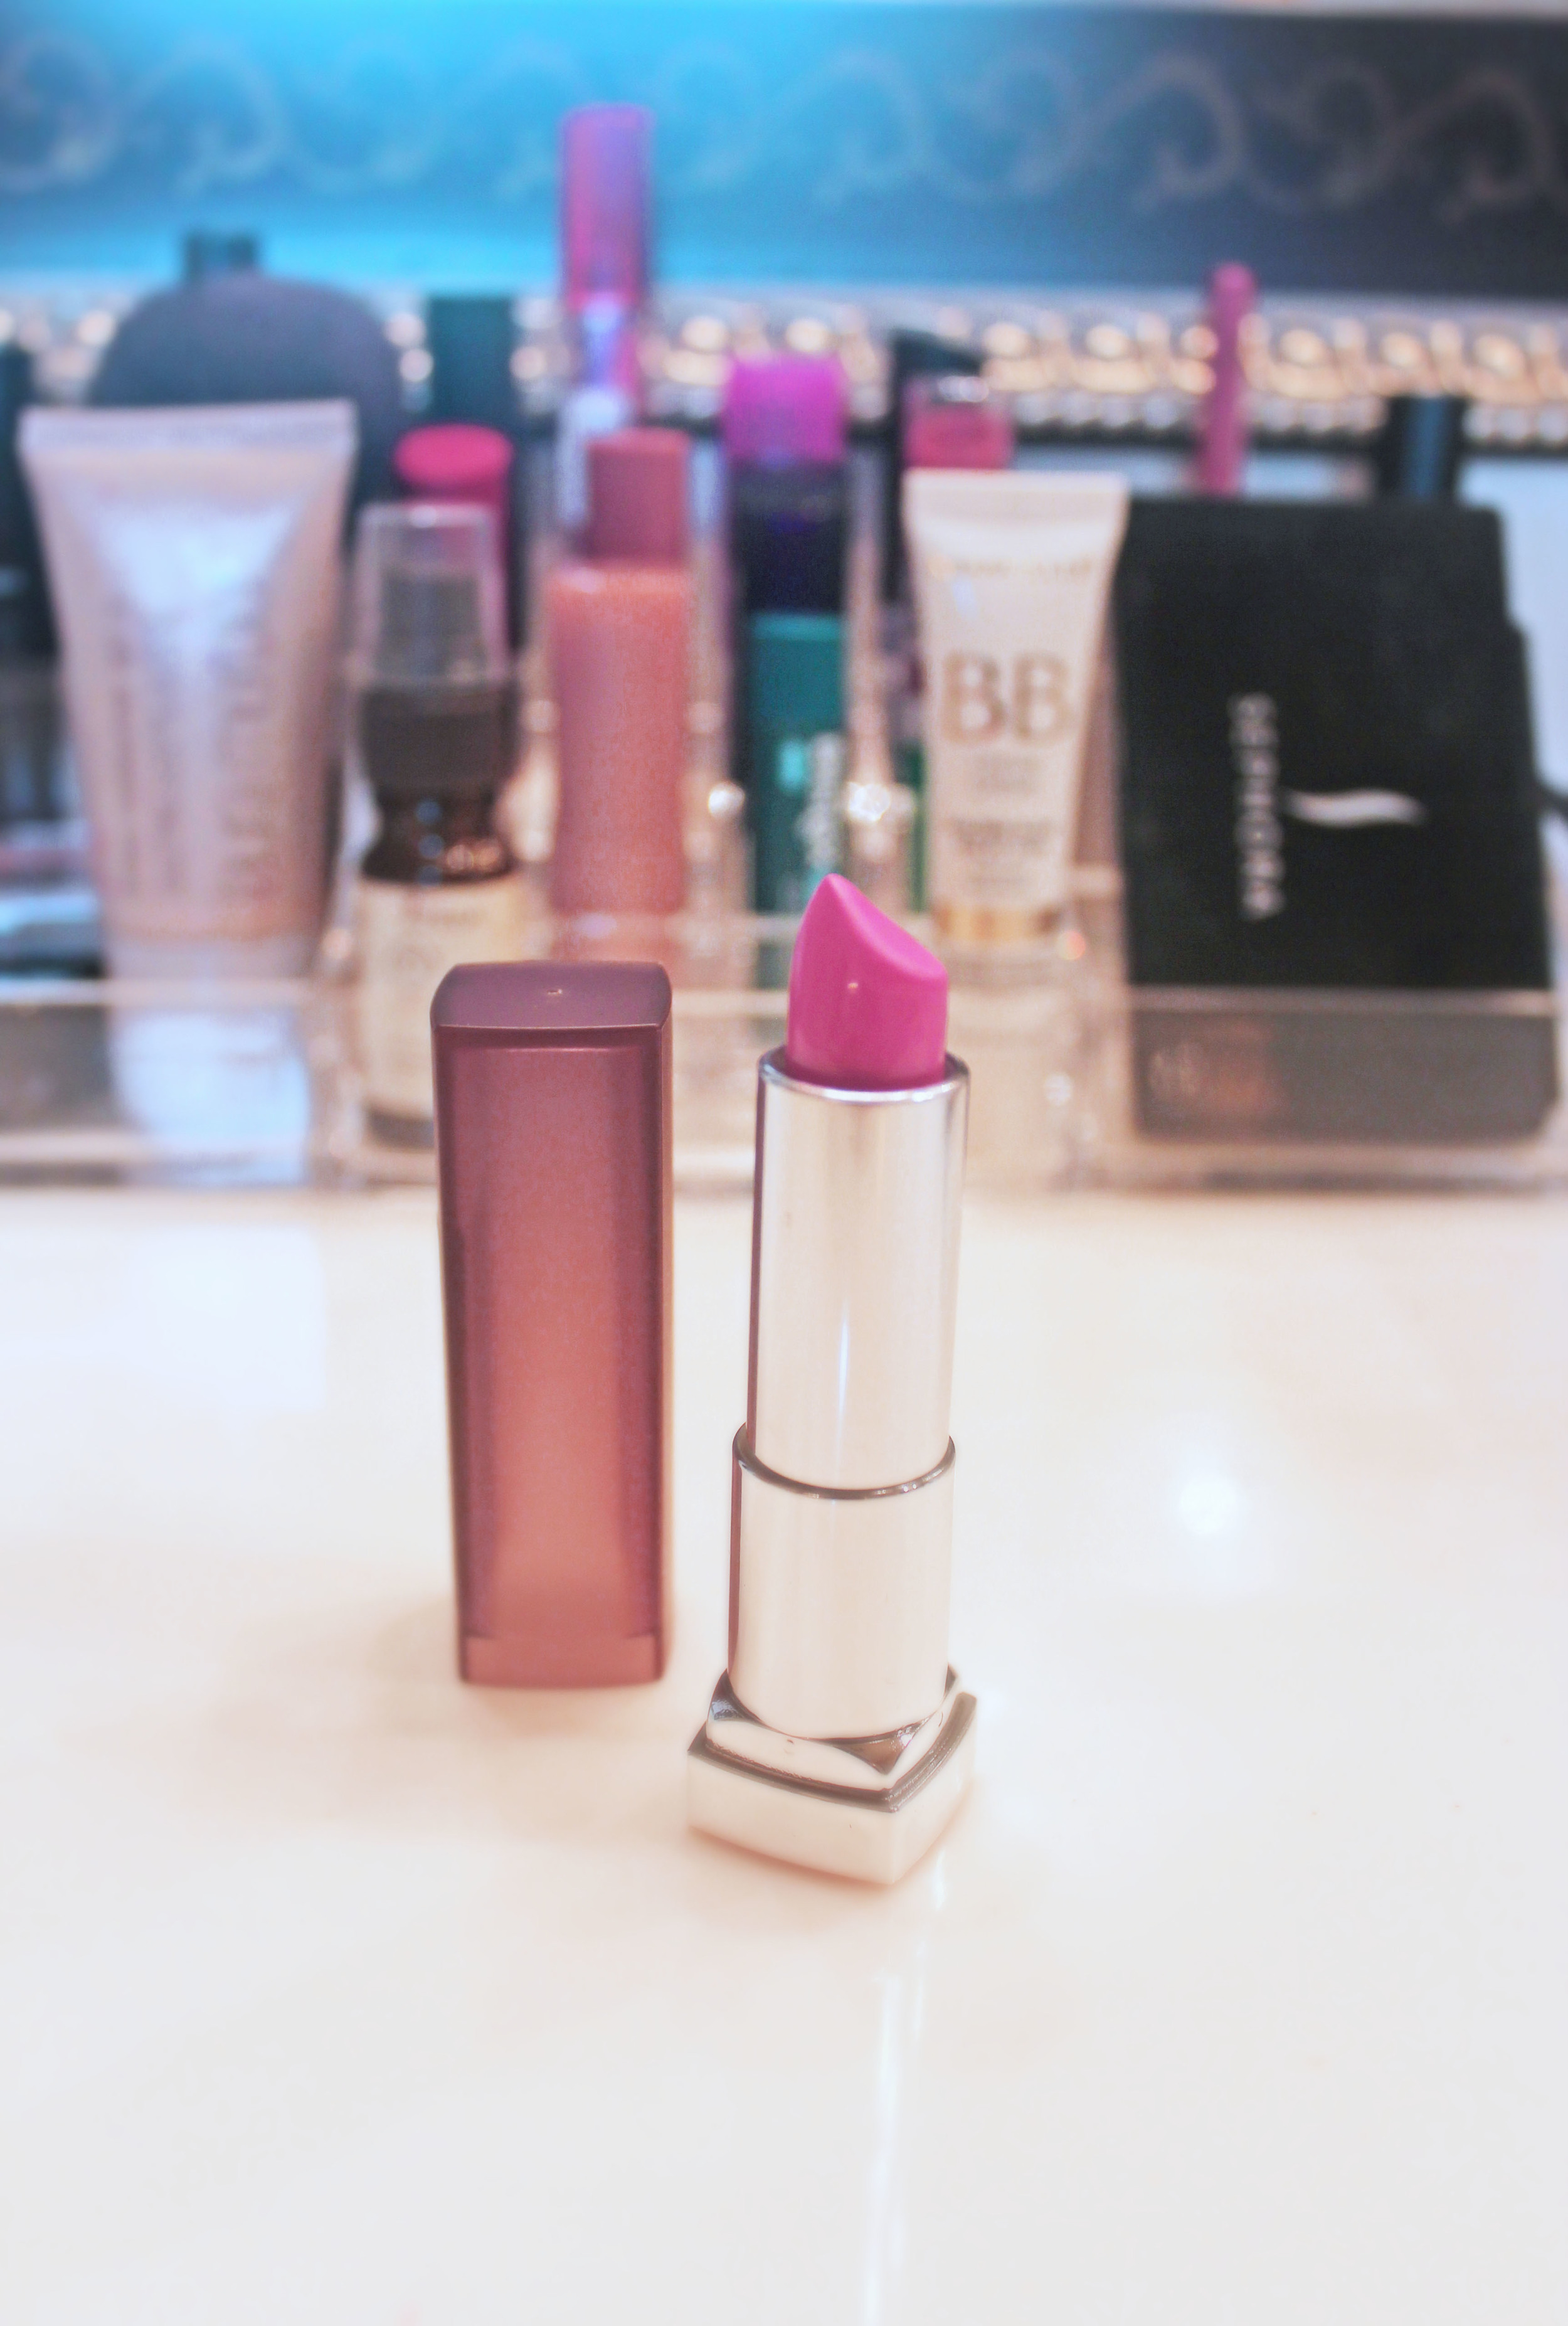 """best girly pink:      Maybelline Color Sensational Creamy Matte Lip Color in """"Pink n Chic""""     This is my go-to when I'm feeling girly or have anice summer tan. When I'm pretty pale in winter months, it tends to wash me out so I stick to this as a summery shade."""